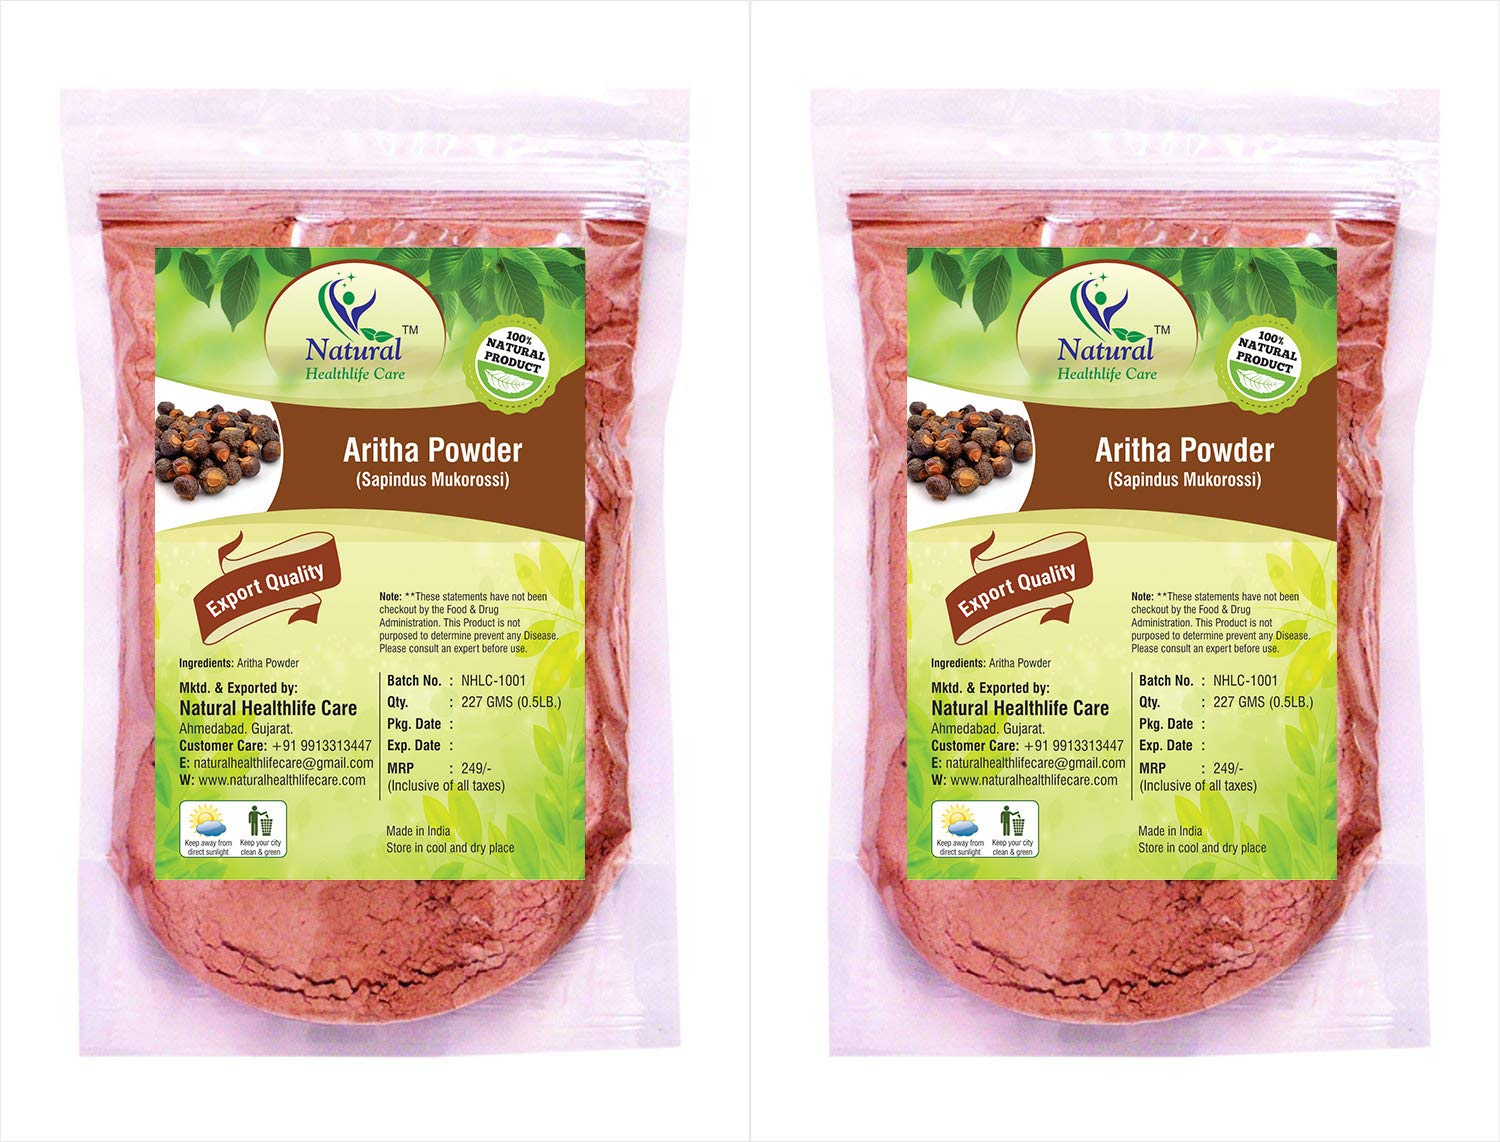 Natural Healthlife Care Aritha Powder, 227 (Pack of 2)